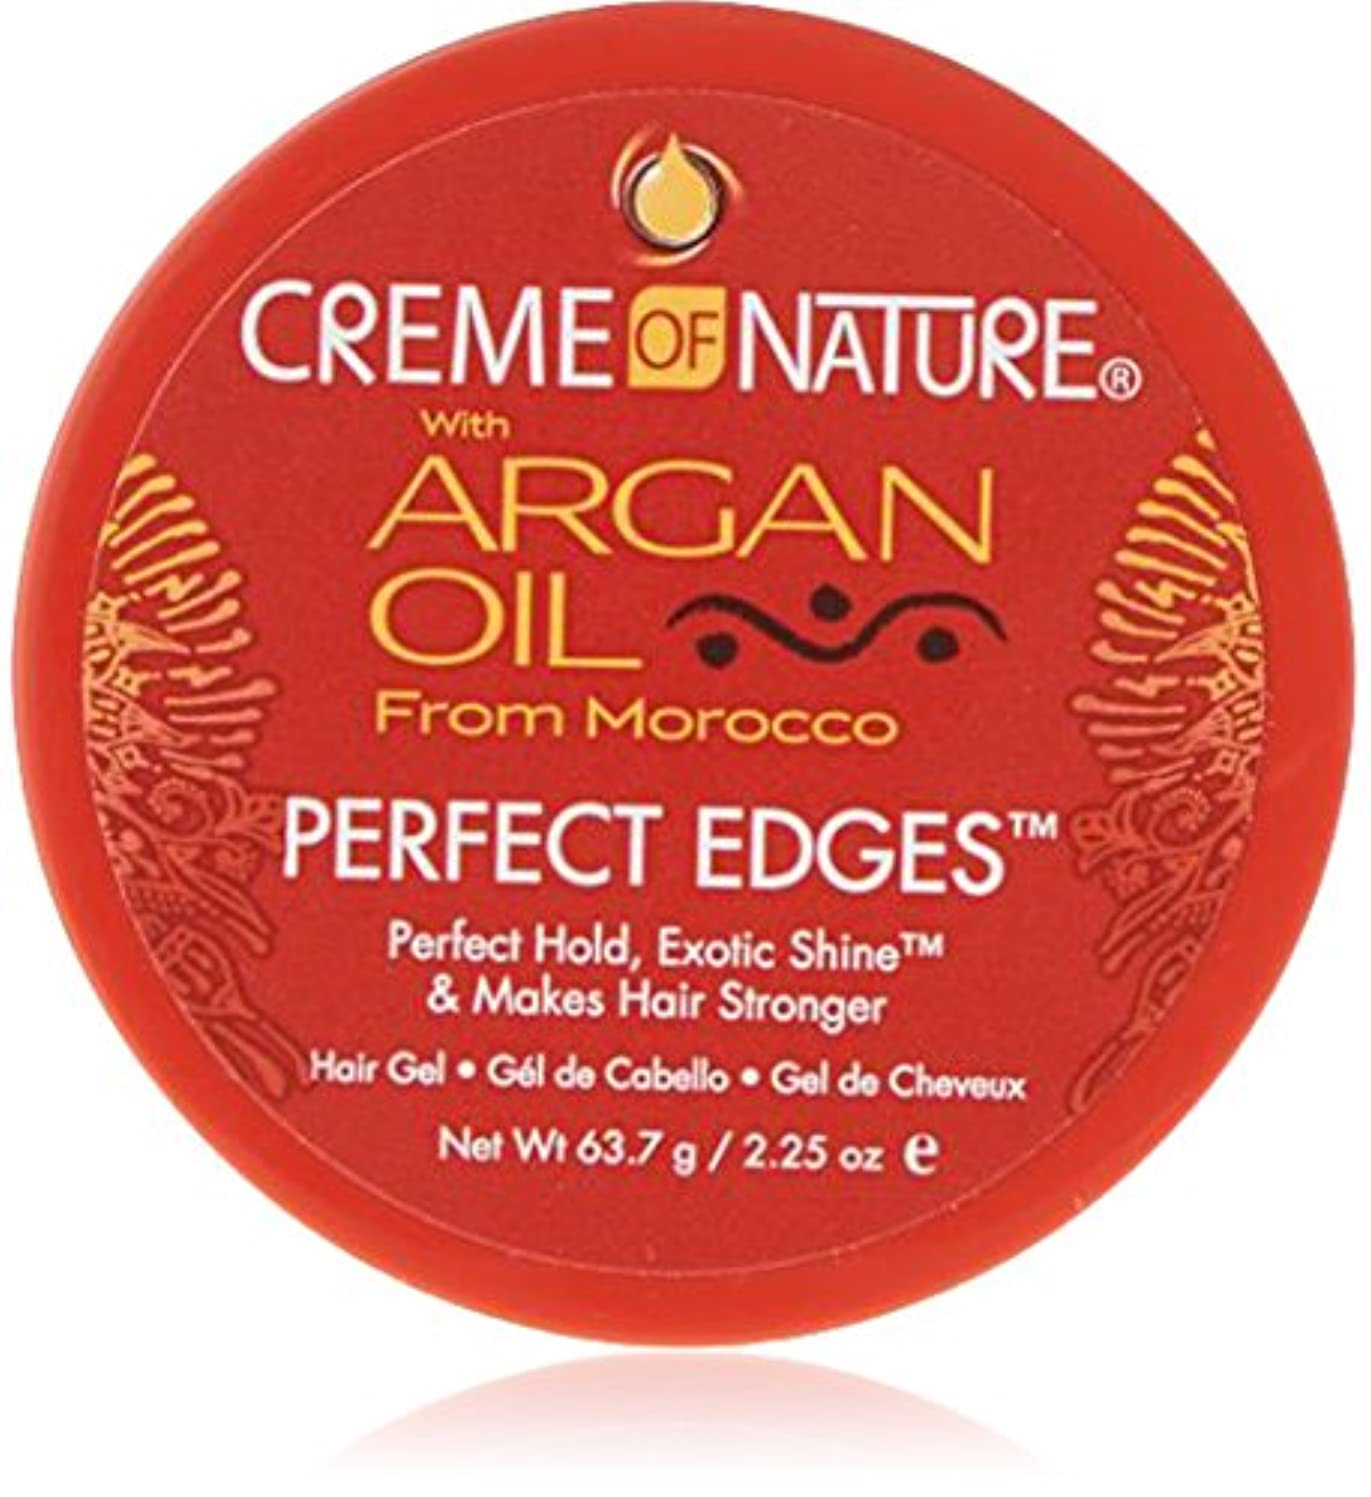 嫉妬然とした蛾Creme of Nature Argan Oil Perfect Edges Control 64g Jar (並行輸入品)